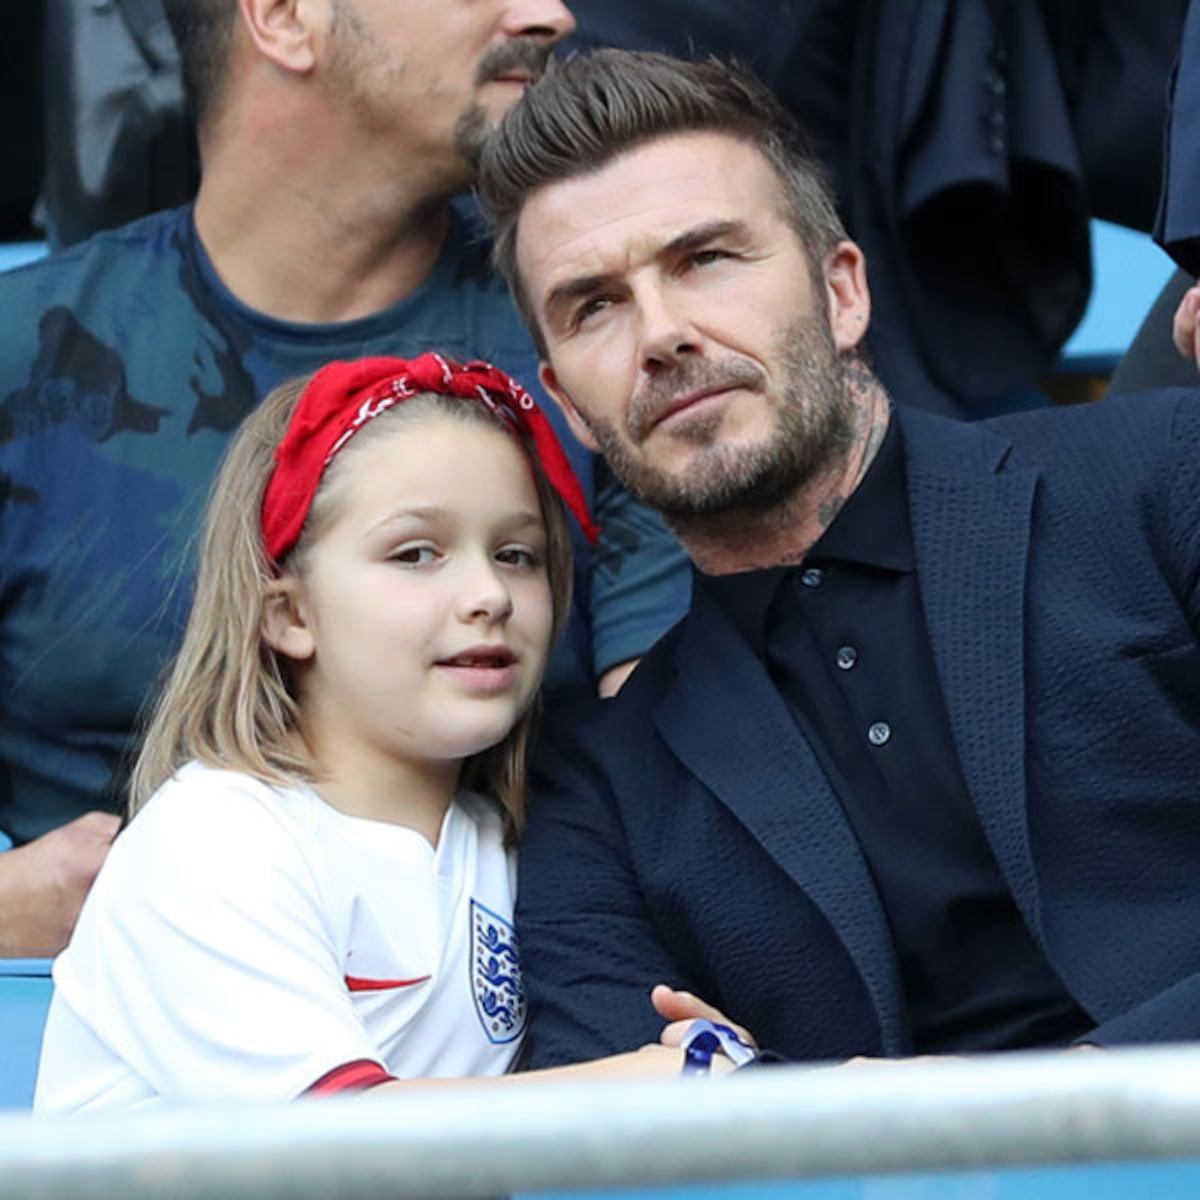 Harper Beckham Wishes You A Merry Christmas In American Sign Language E Online Desperate definition, reckless or dangerous because of despair, hopelessness, or urgency: harper beckham wishes you a merry